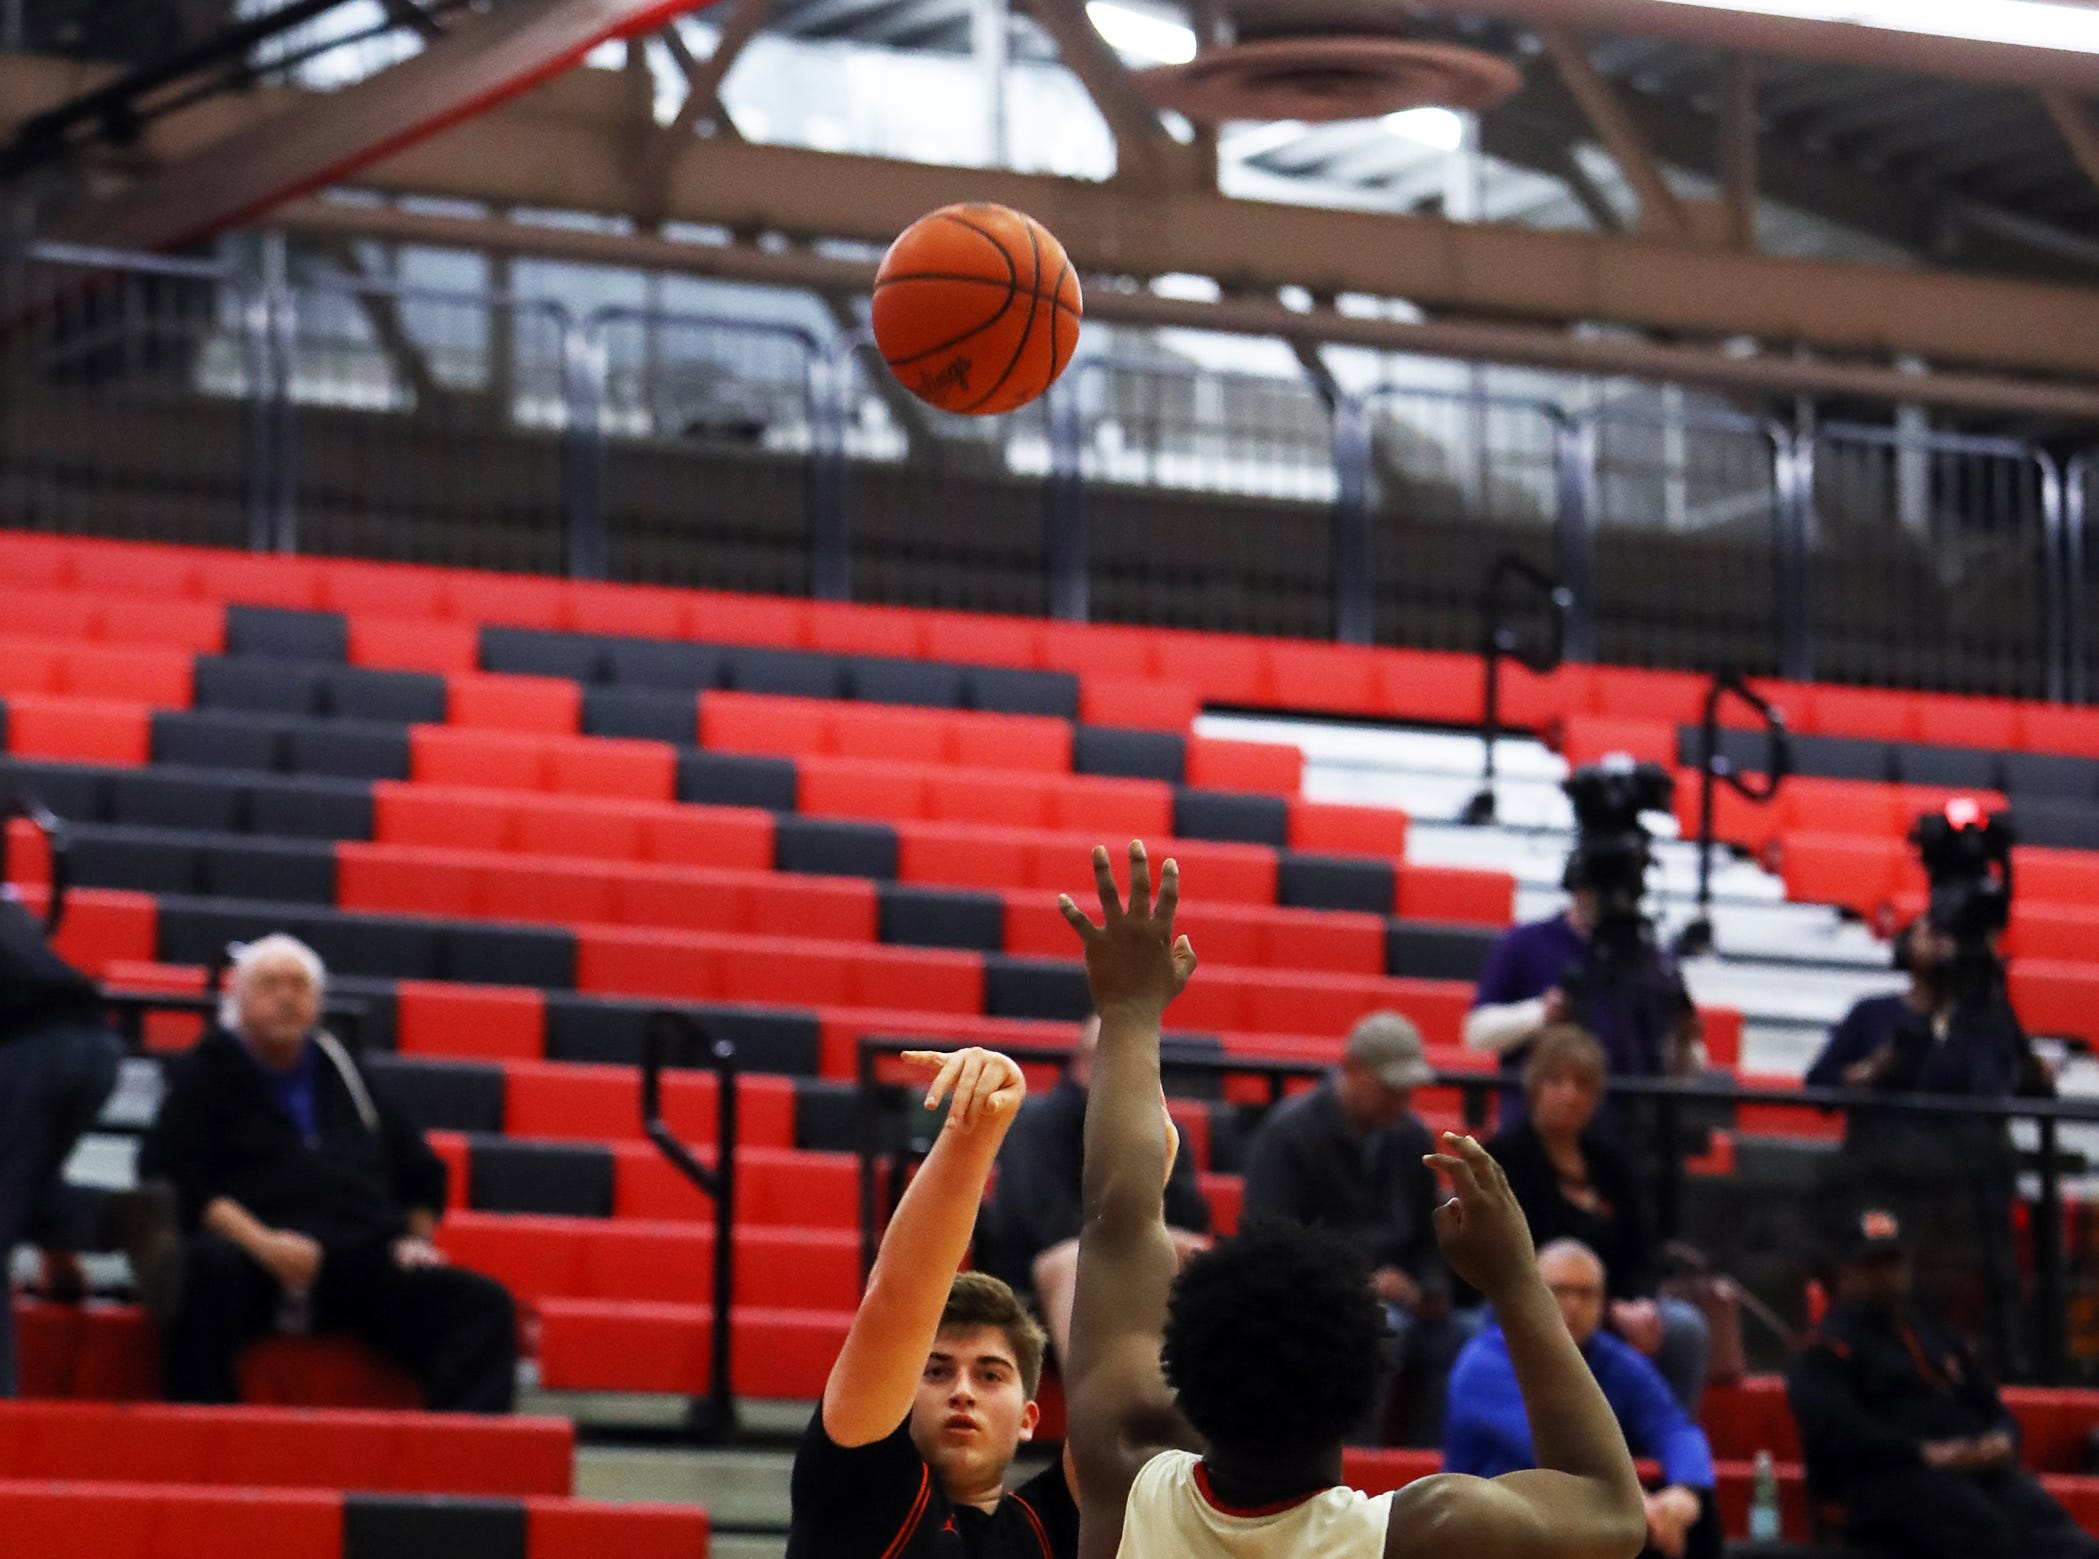 Loveland forward Alec Soth knocks down a three-point shot in the sectional playoffs at Lakota West High School Feb. 23, 2019.